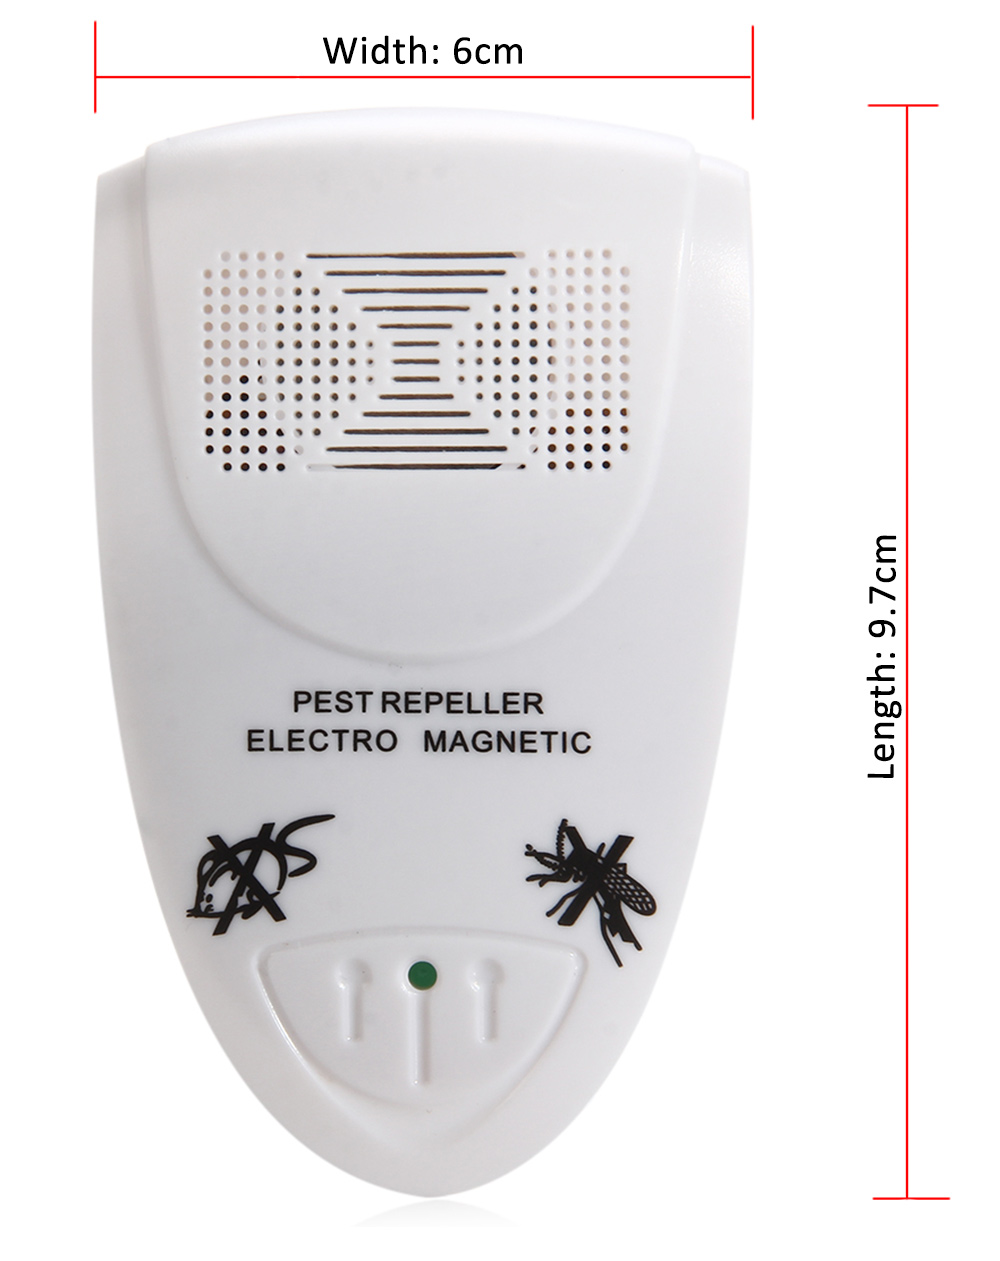 Ll - 3110 Ultrasonic Home Pest Control Repellent Electronic Plug-in Repeller for Insects